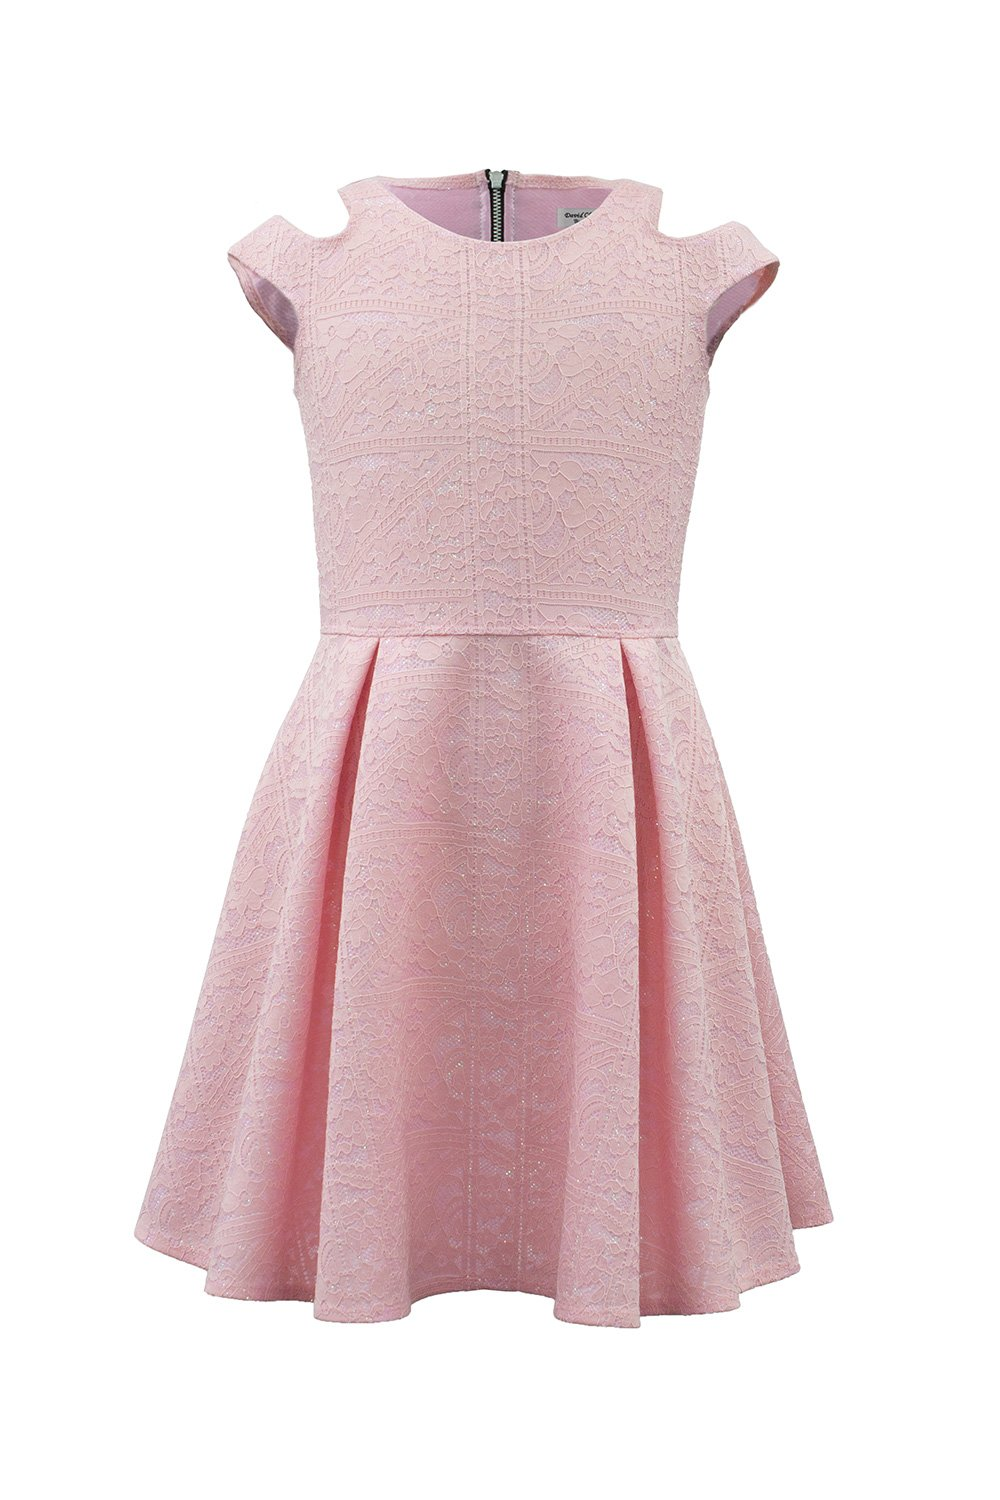 Vestido de encaje floral en color rosa - David Charles Childrens Wear